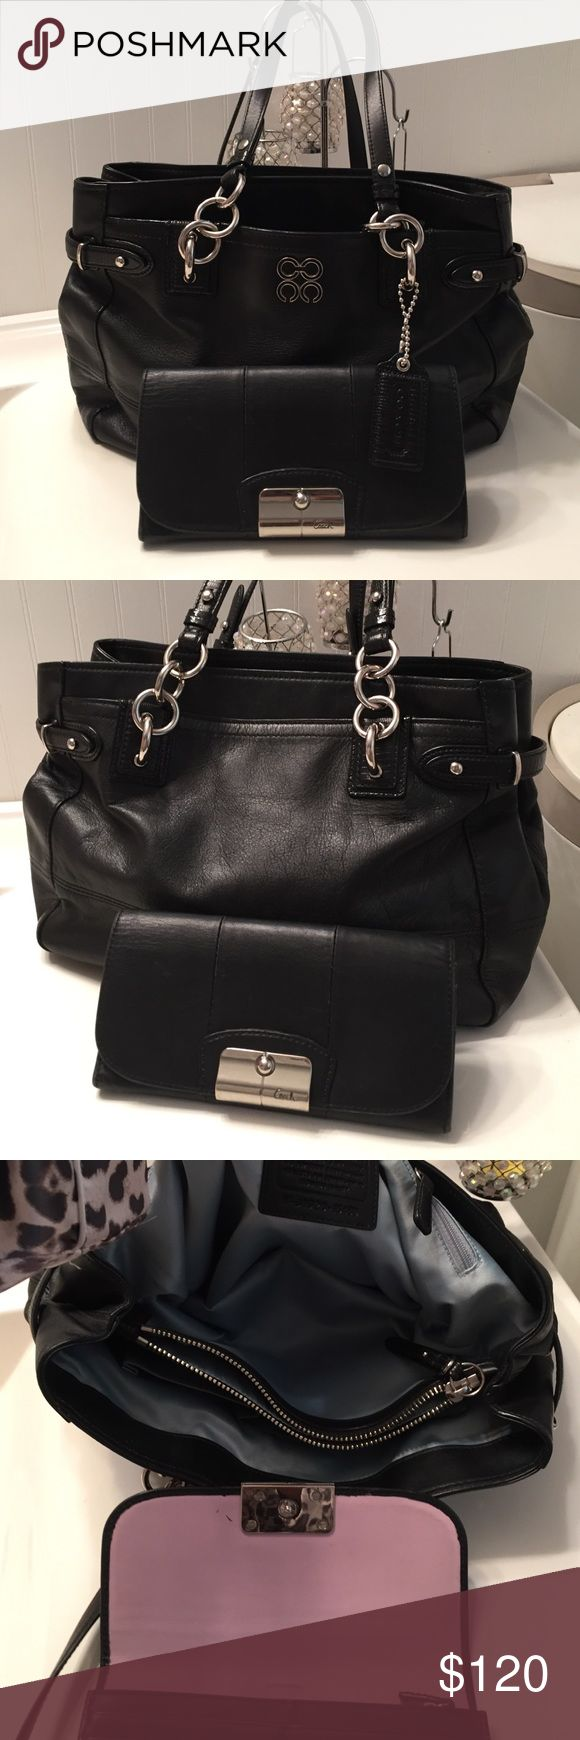 Coach Bags - FLASHSALE Coach Colette Leather Tote & Wallet